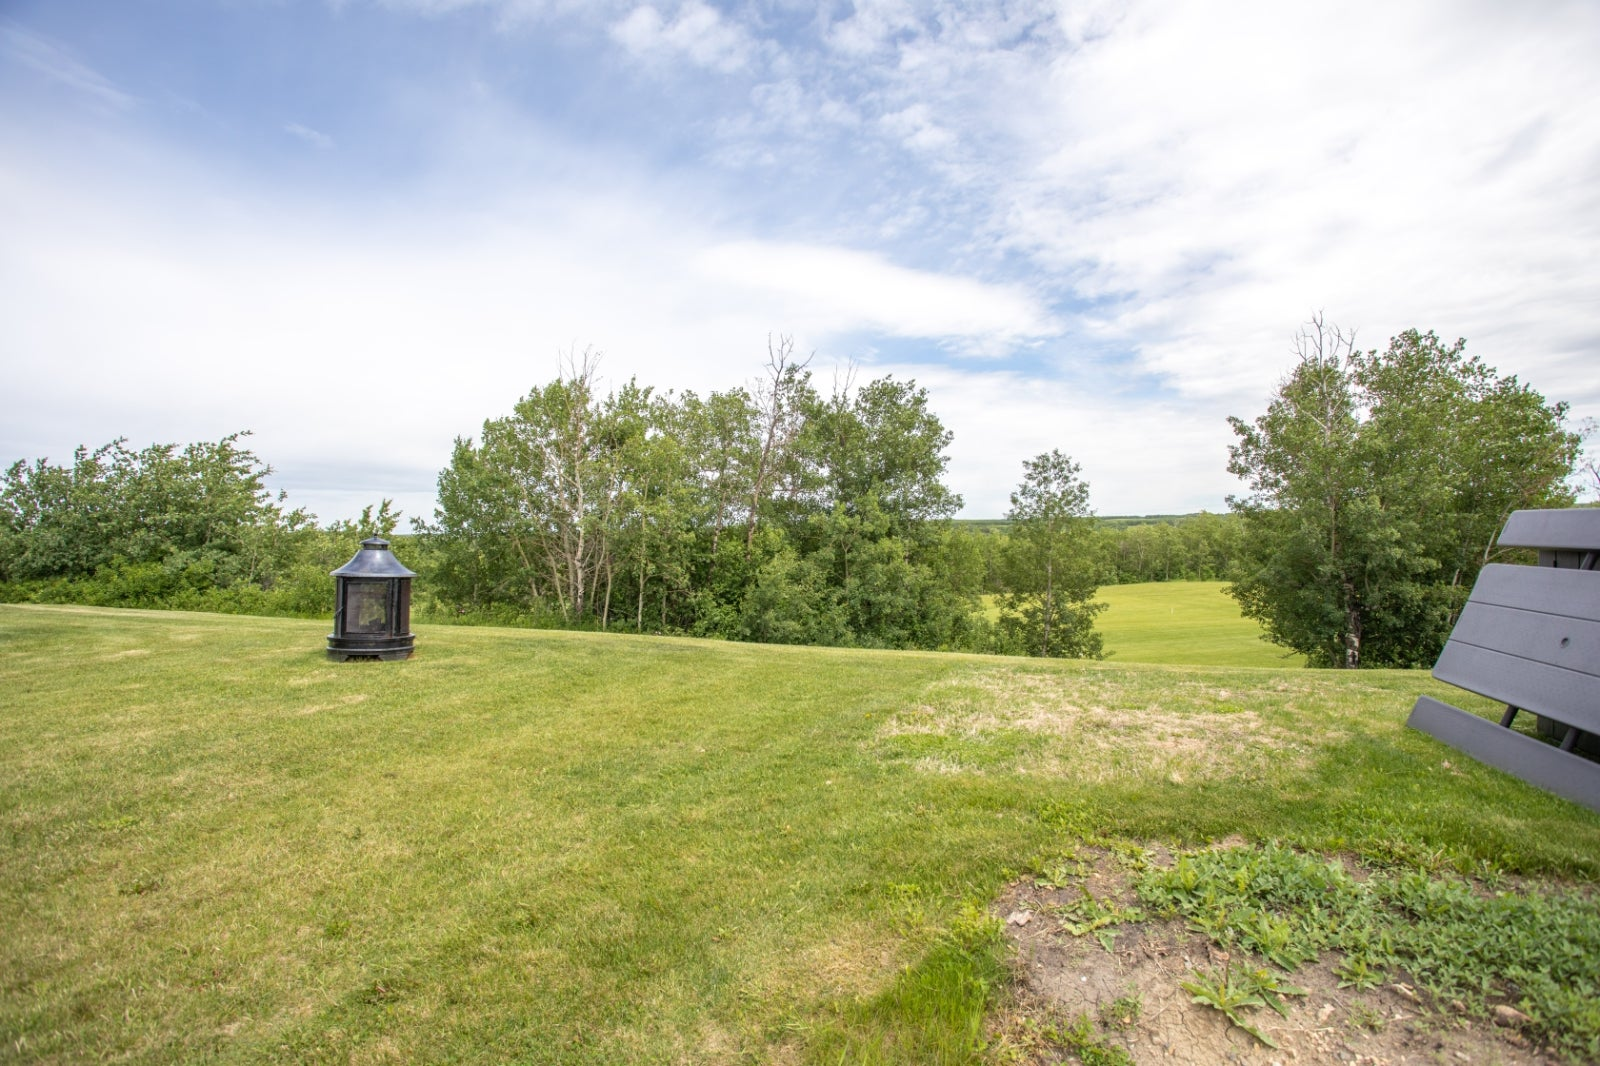 6084, 25054 SOUTH PINE LAKE Road - Whispering Pines Residential Land for sale(A1100818) #4